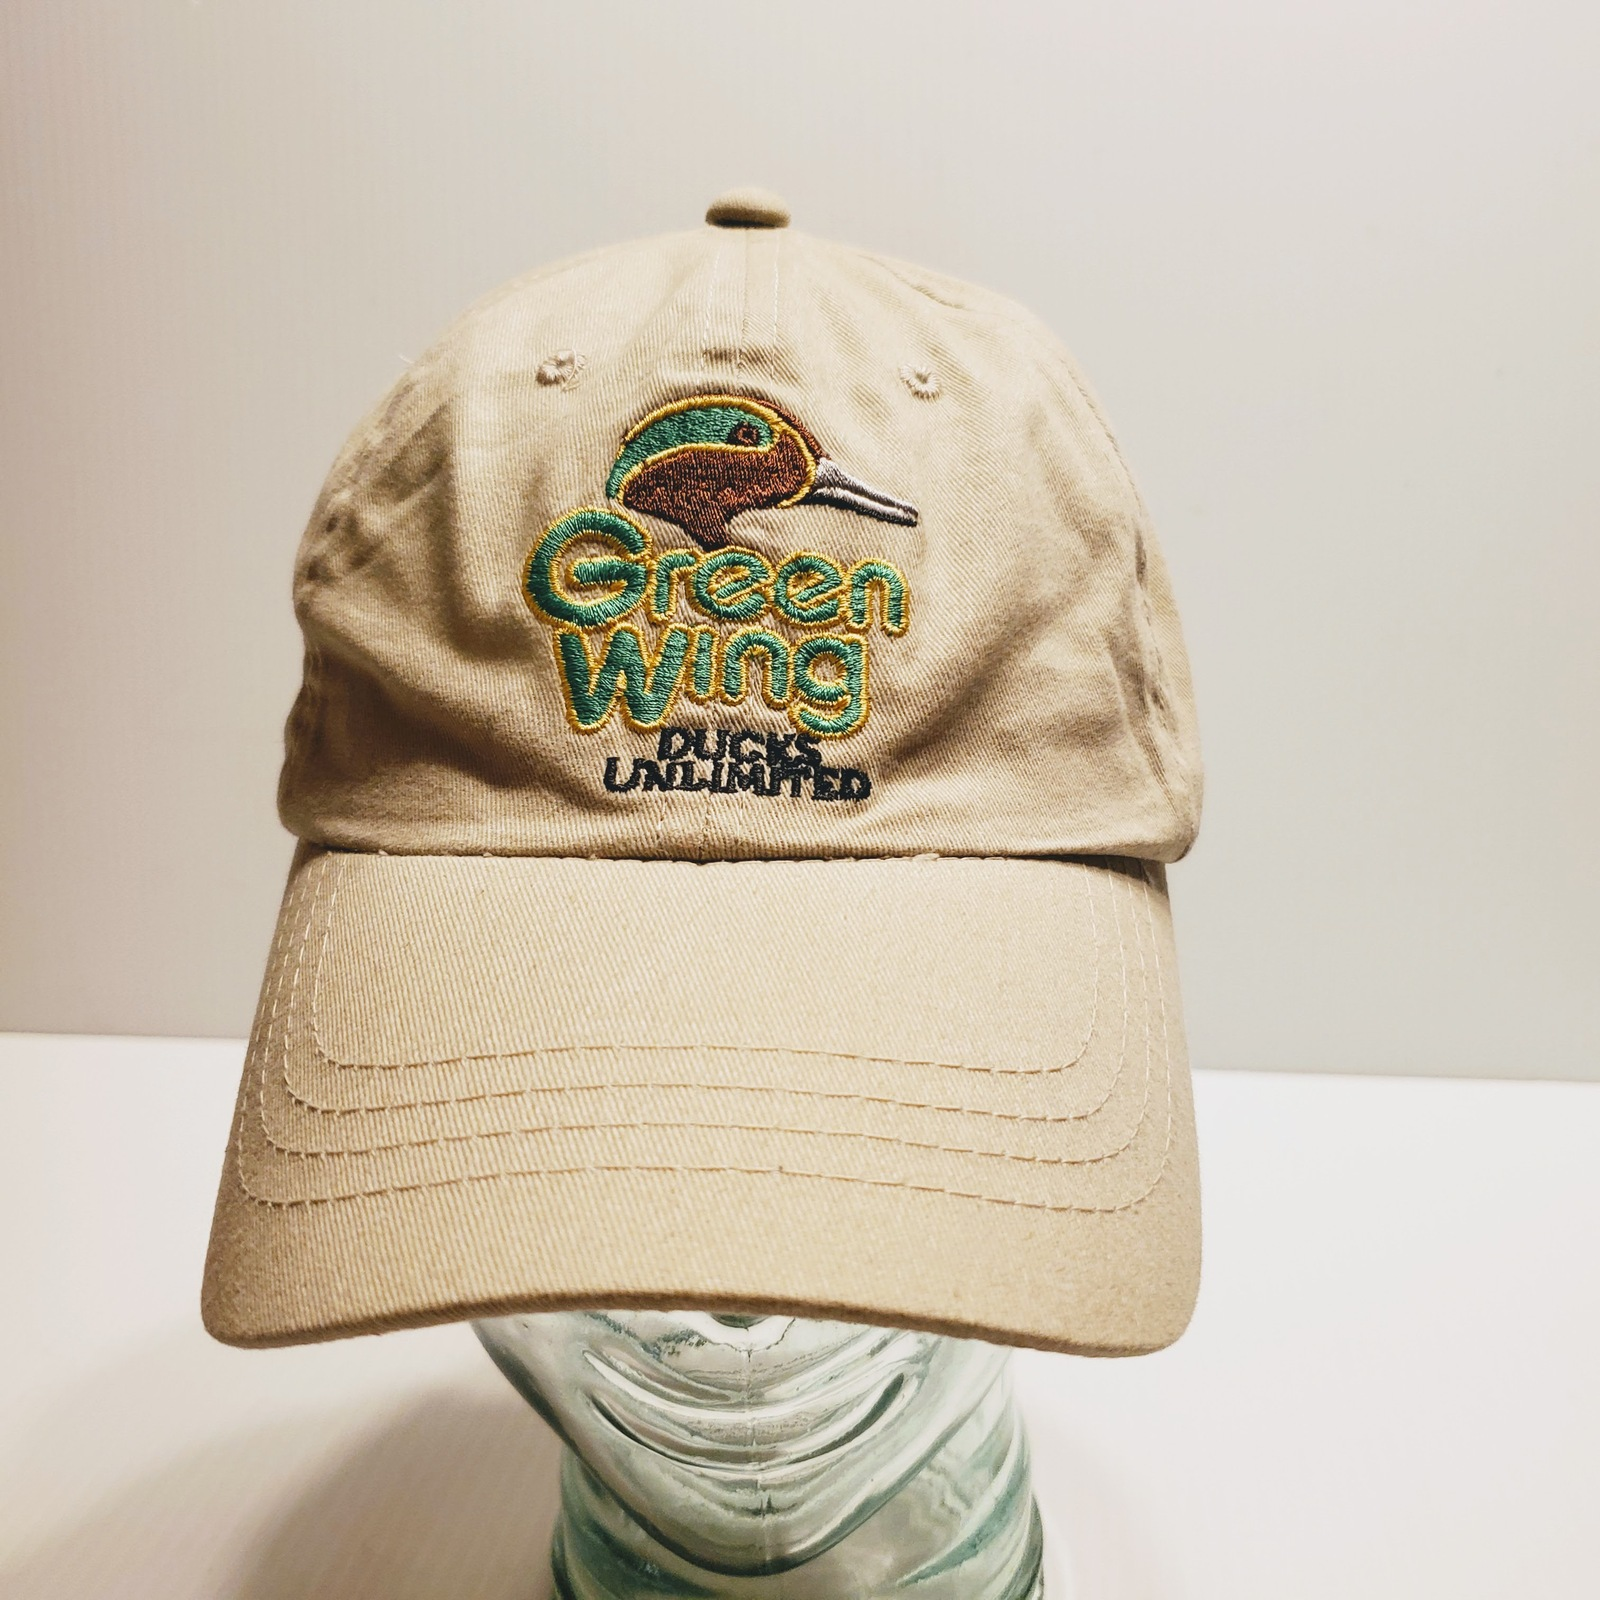 Green Wing Ducks Unlimited Adjustable Hat One Size Fits Most. Dorfman Pacific.